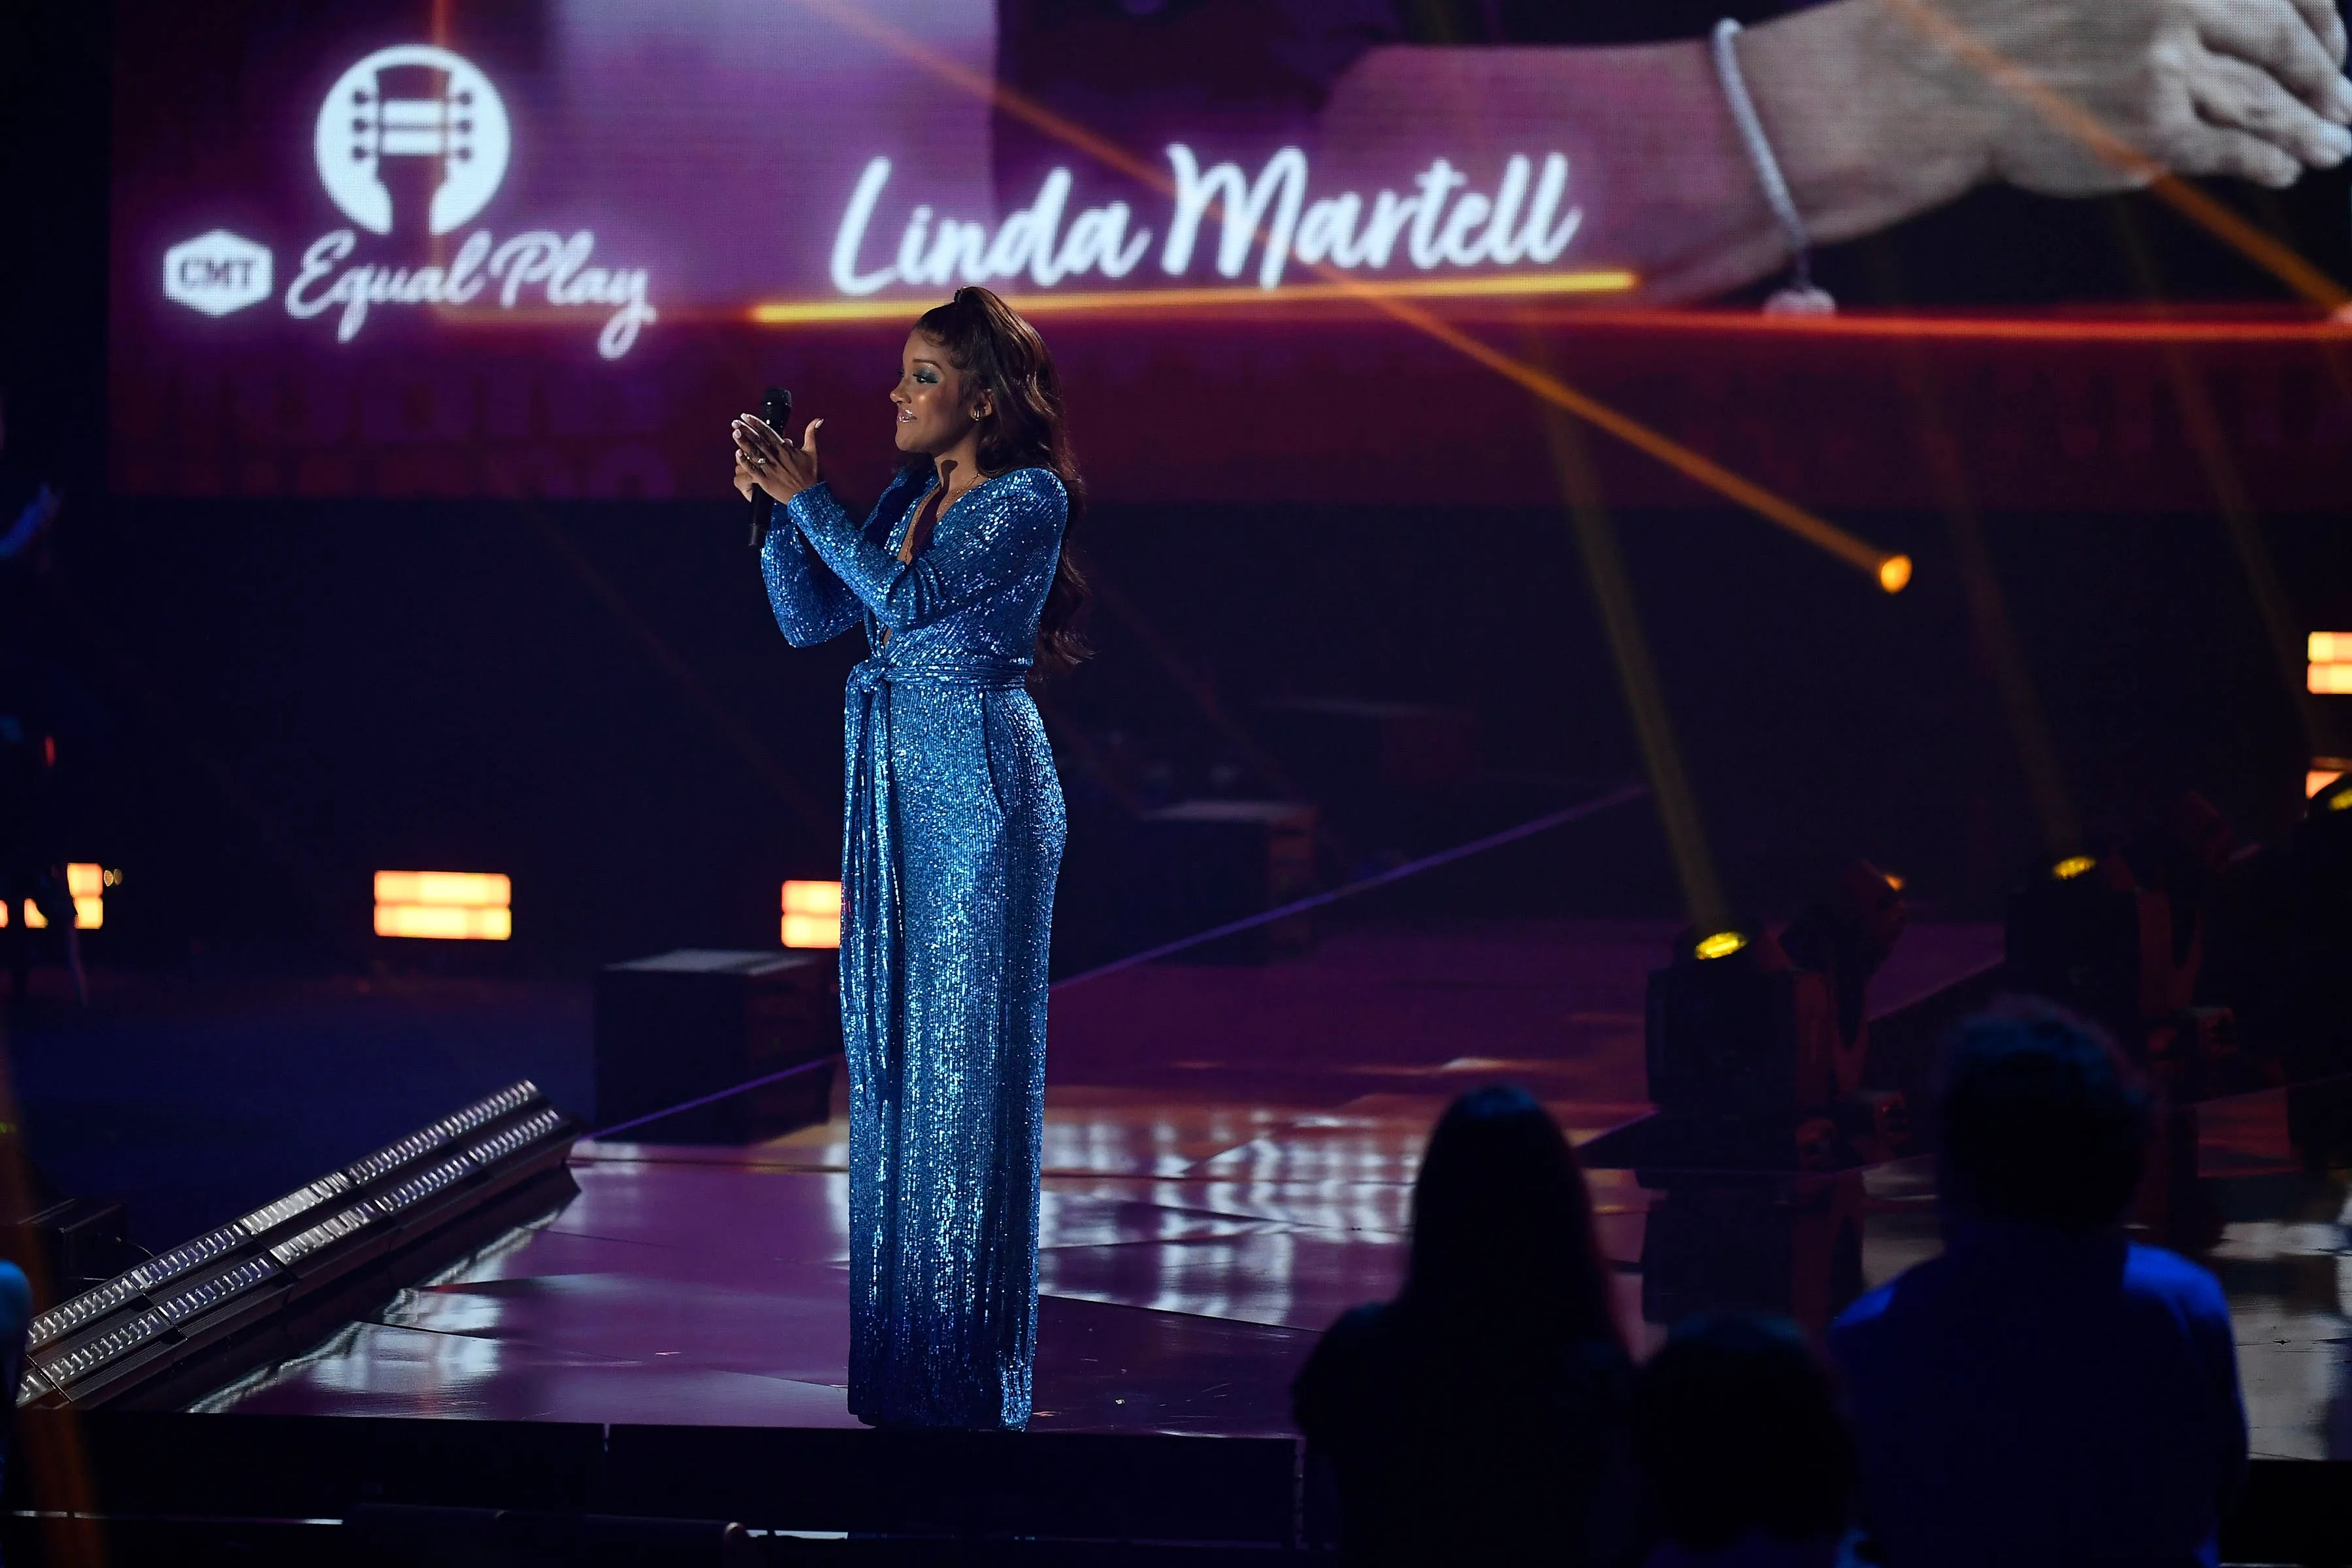 Mickey Guyton presents the Equal Play Award to Linda Martell during the 2021 CMT Music Awards at Bridgstone Arena in Nashville, Tenn on Wednesday, June 9, 2021.